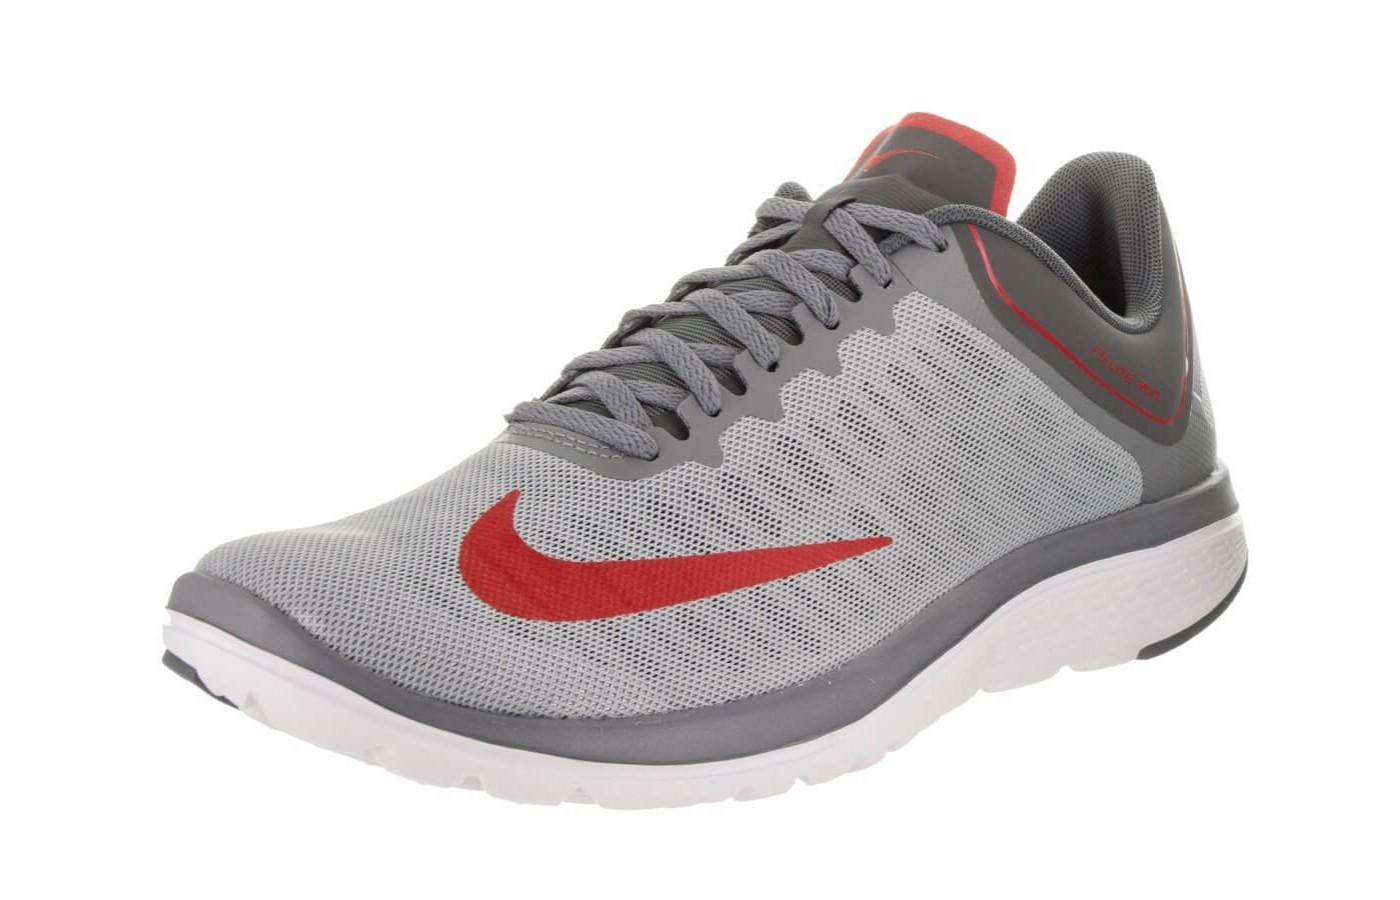 The upper of the Nike FS Lite Run 4 is outfitted in Breathe Tech fabric